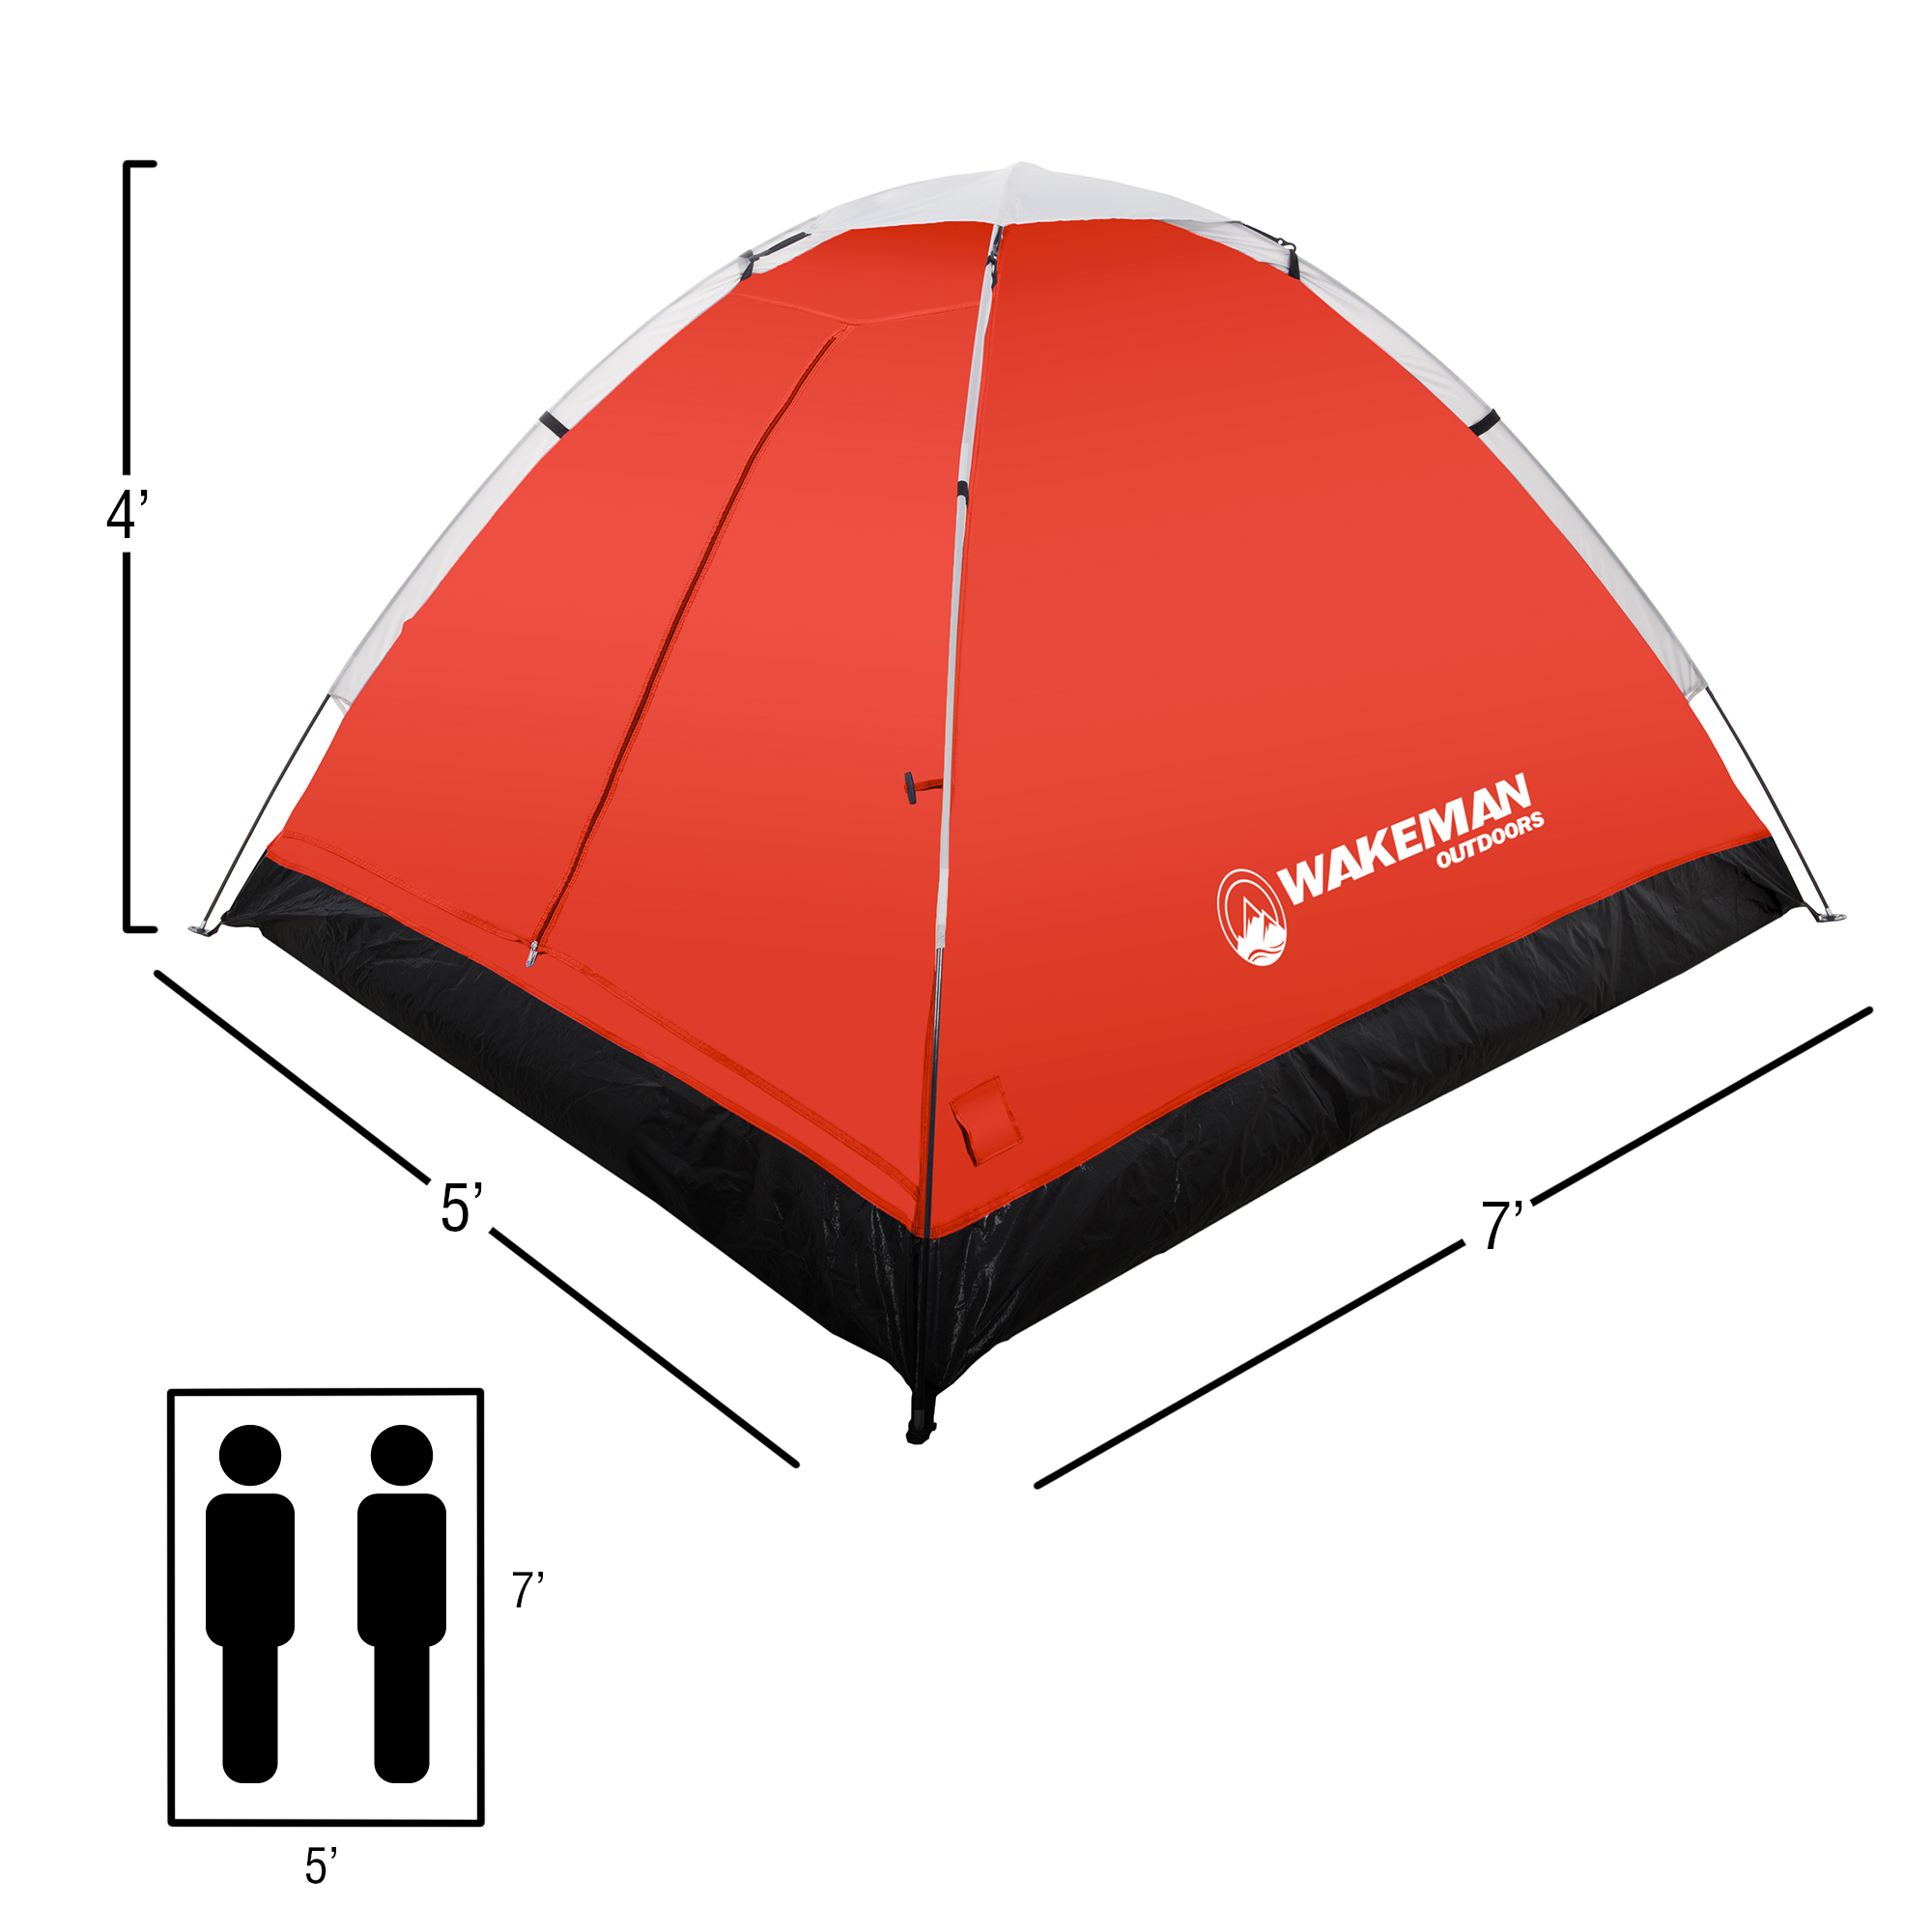 Easy Set Up-Great for Camping Rain Fly /& Carry Bag Backpacking 2-Person Dome Tent Hiking /& Outdoor Music Festivals by Wakeman Outdoors